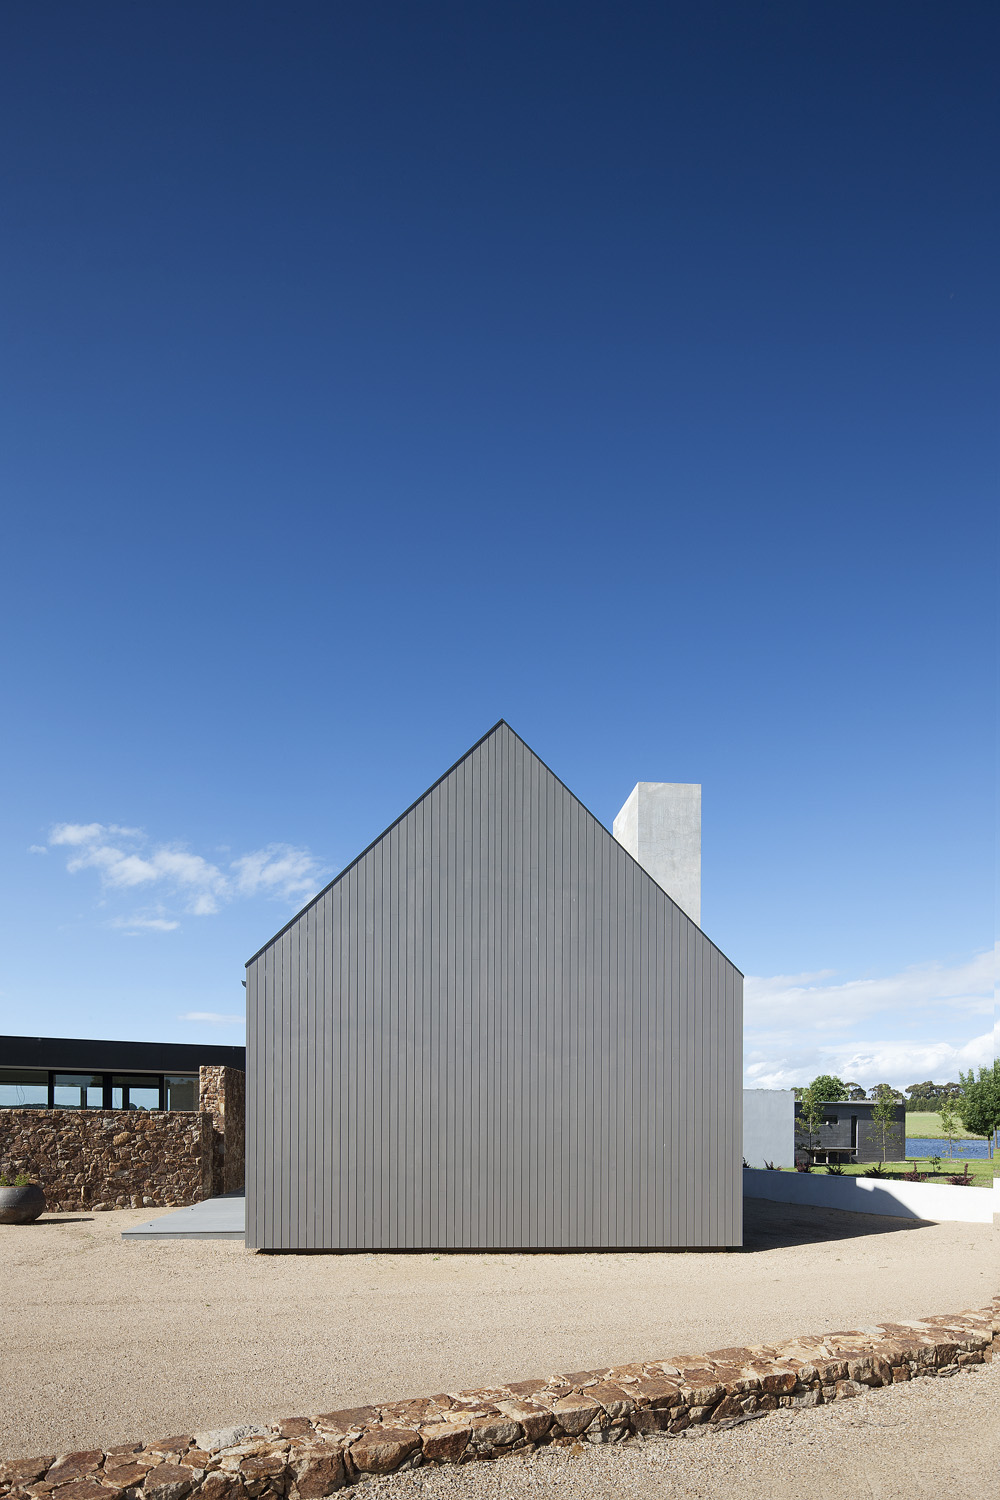 WE LOVE The seamless exterior of the  timber-clad barn — simple but effective